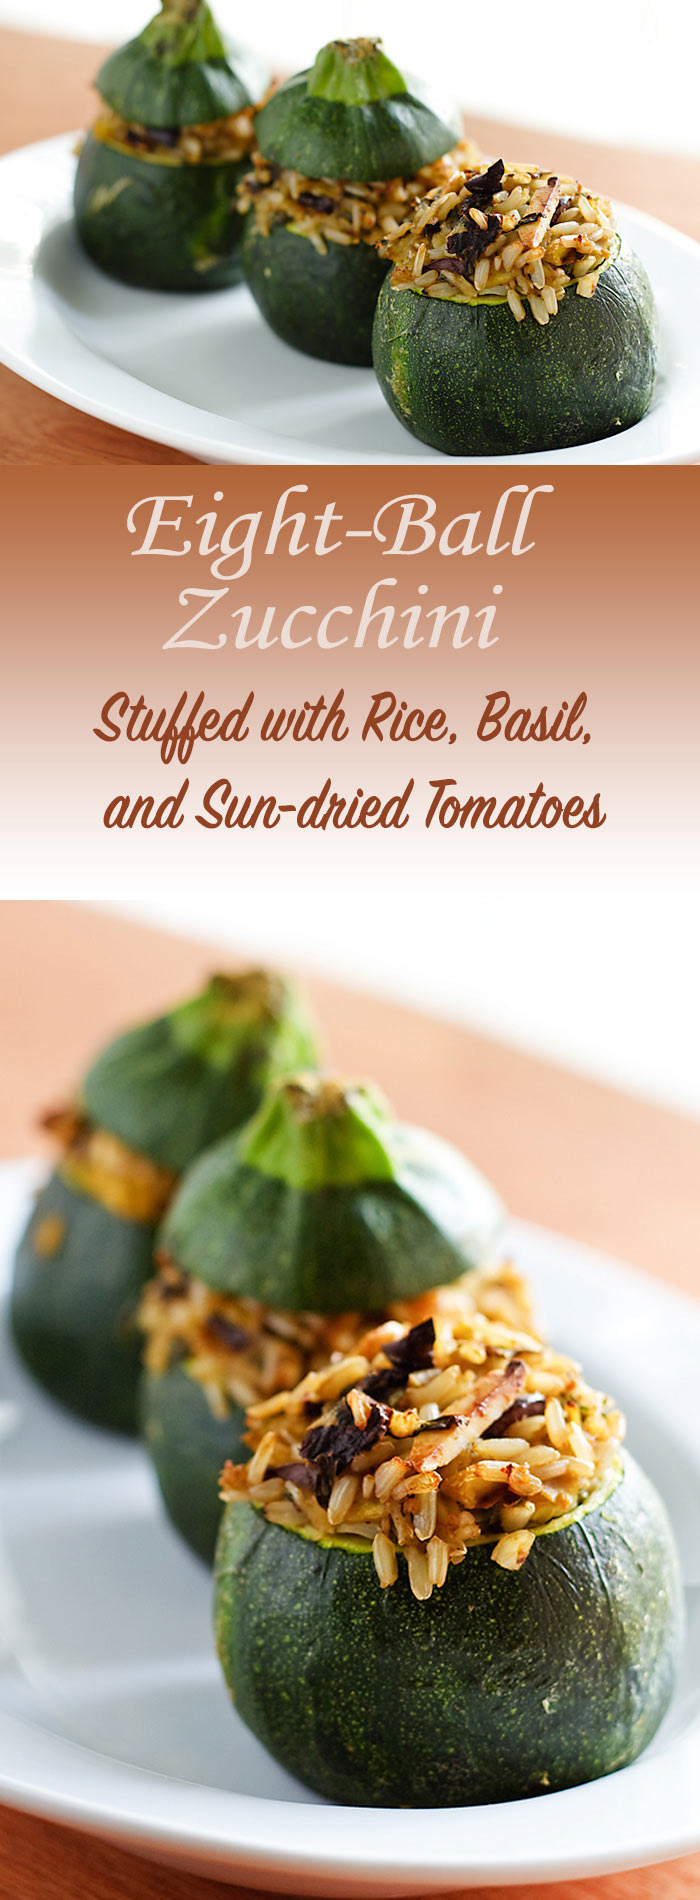 Sun-dried tomatoes lend depth, and a few Kalamata olives pack their usual punch, but the peppery taste of basil makes these rice-stuffed zucchini special. Vegan, low-fat, and gluten-free.